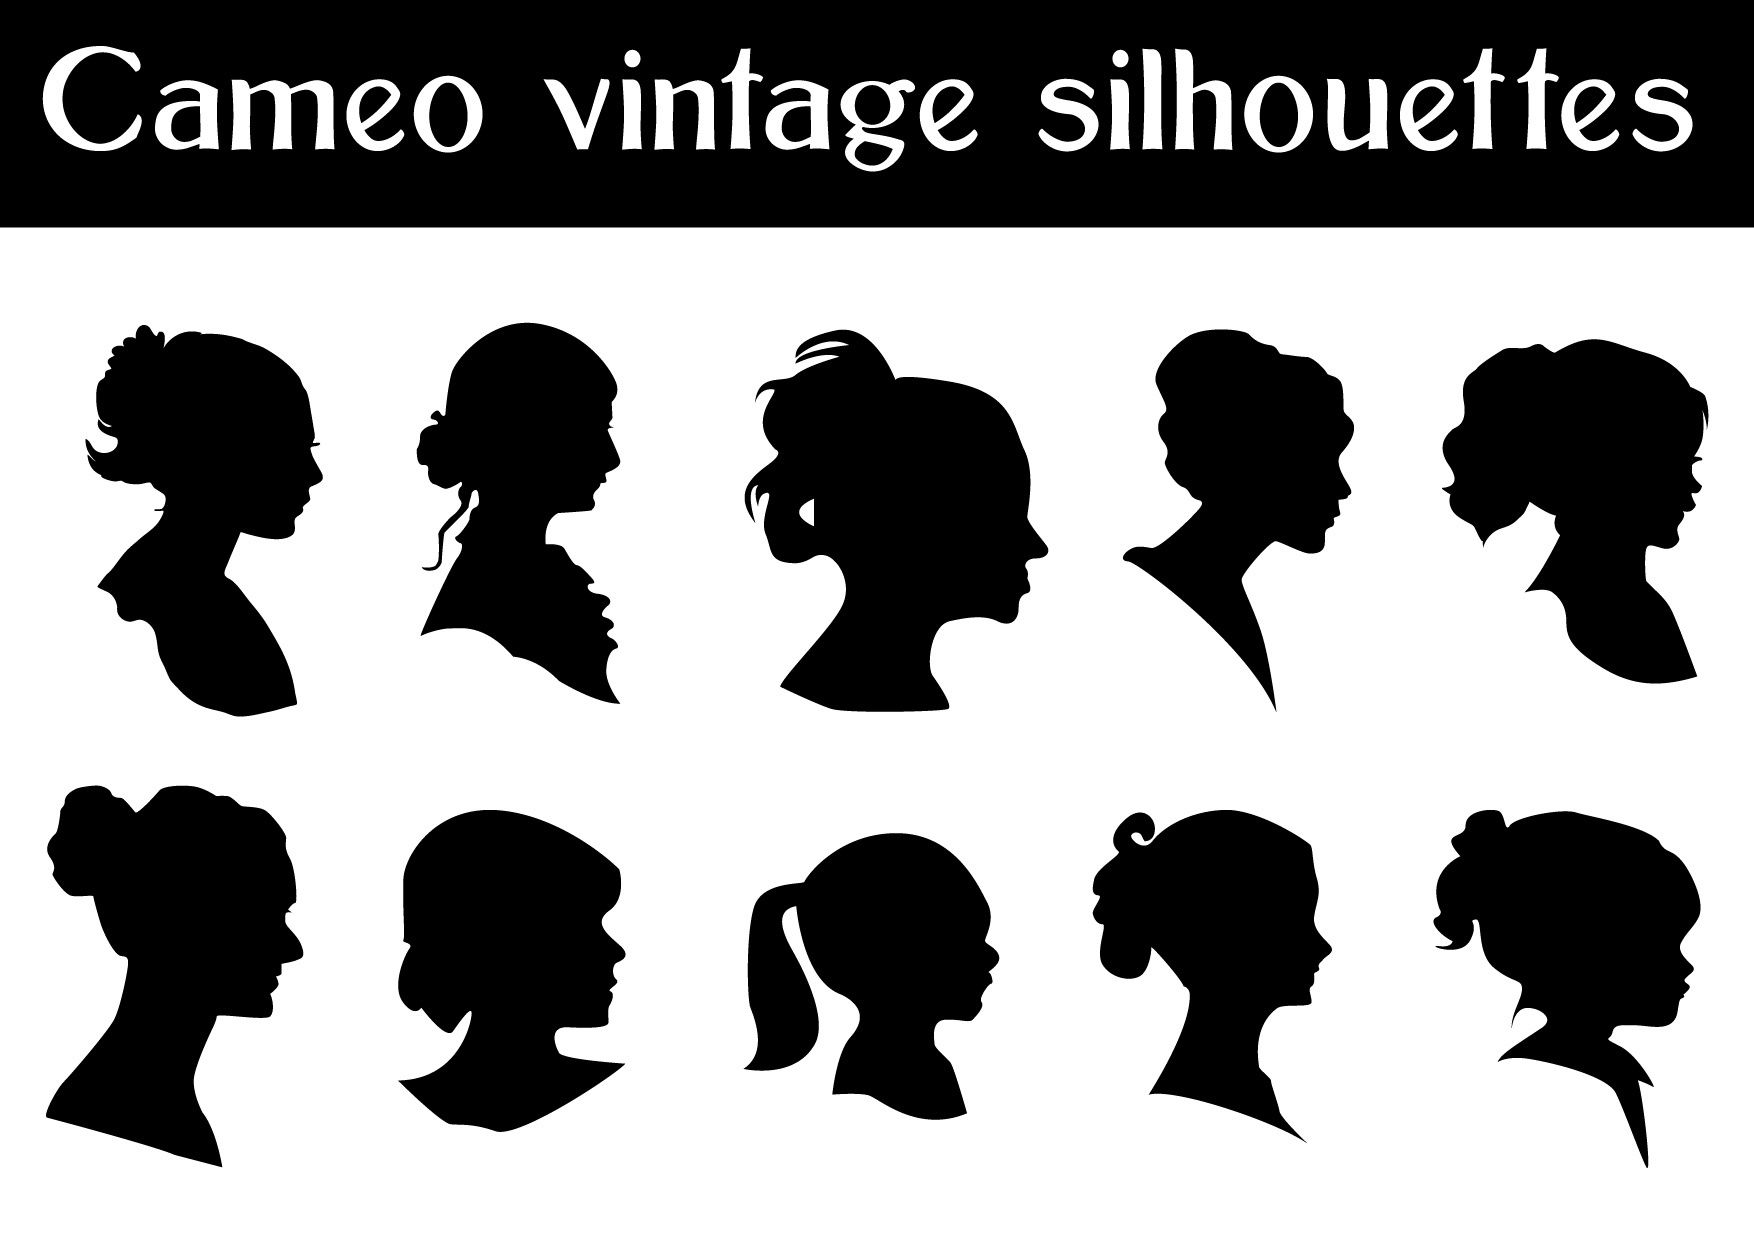 Free Vector Silhouettes Cameo